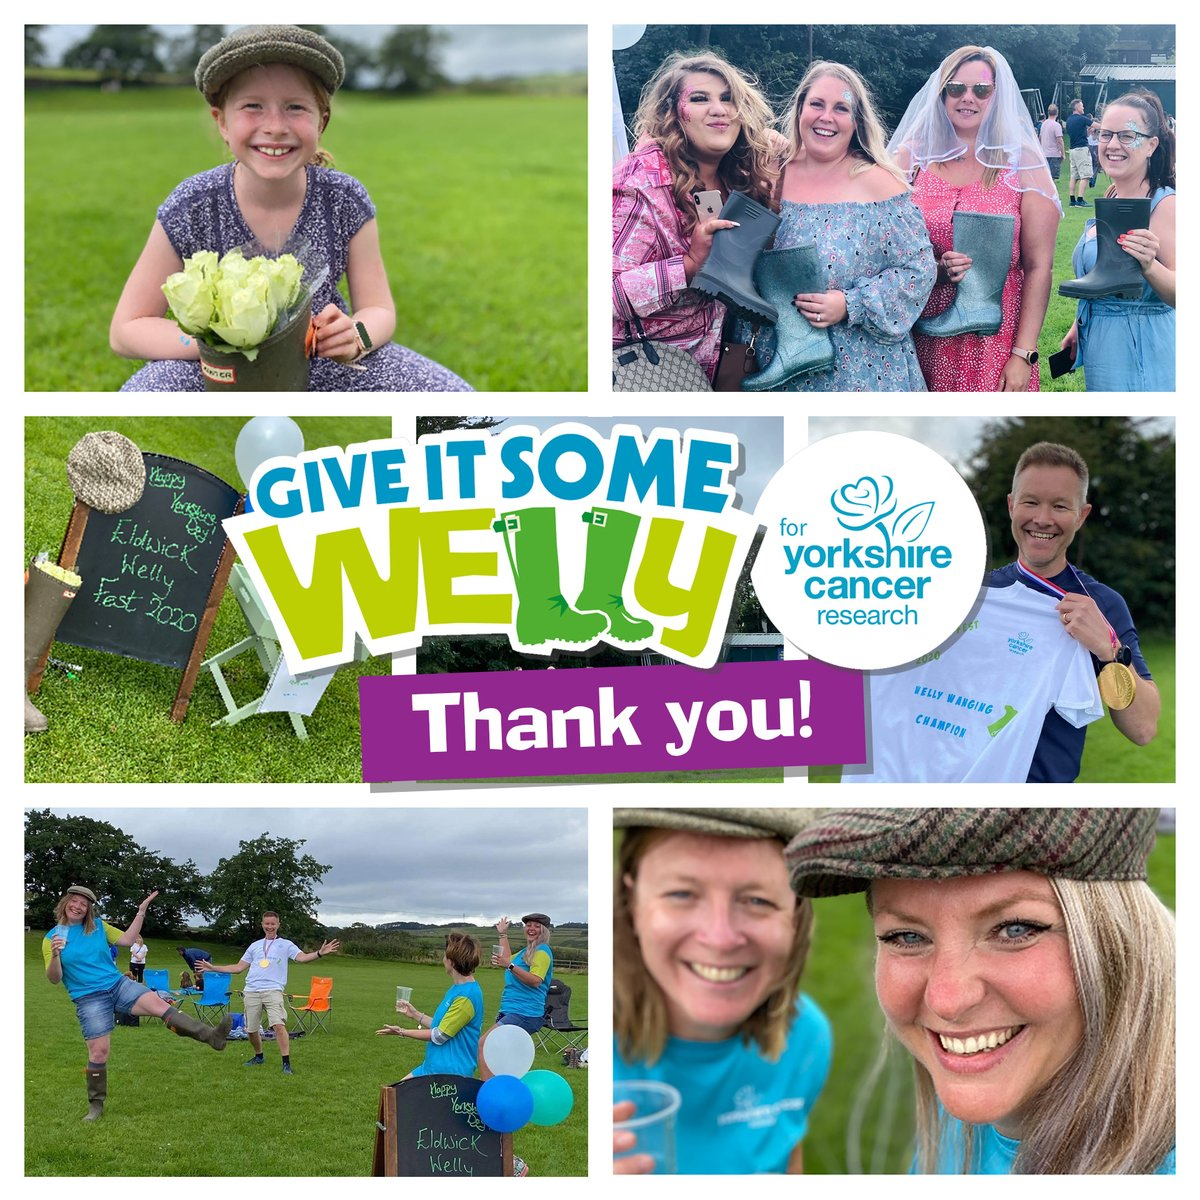 We couldn't have raised life changing funds for our Give it Some Welly campaign if it wasn't for the support of all our fundraisers. Eldwick Welly Fest,  run by a small group of local mums, raised an astonishing £1,236! Thank you so much for your generosity.  #GiveItSomeWelly